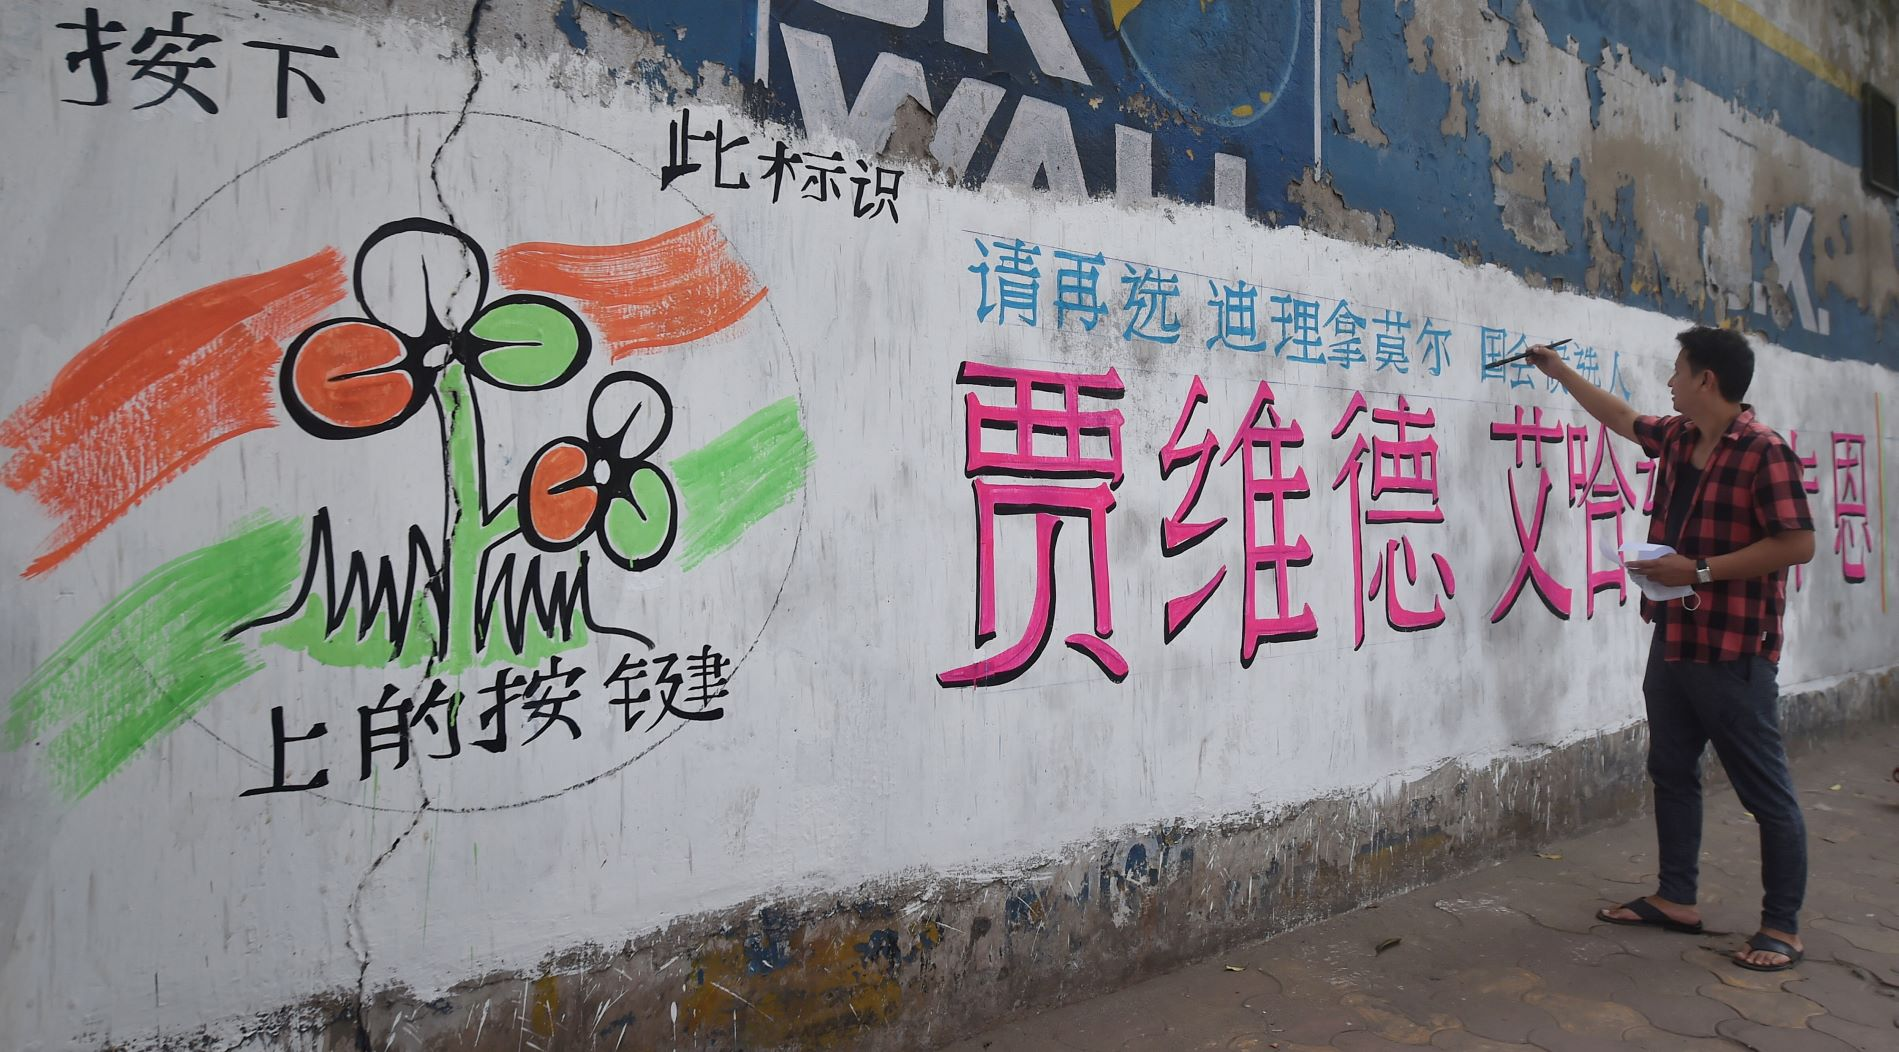 Kolkata: People belonging to Indian Chinese community paint a mural in Chinese language in support of TMC Candidate Javed Ahmed Khan for Kasba constituency ahead of State Assembly poll in Kolkata, Thursday, March 11, 2021. (PTI Photo/Swapan Mahapatra)(PTI04 28 2021 000213B)